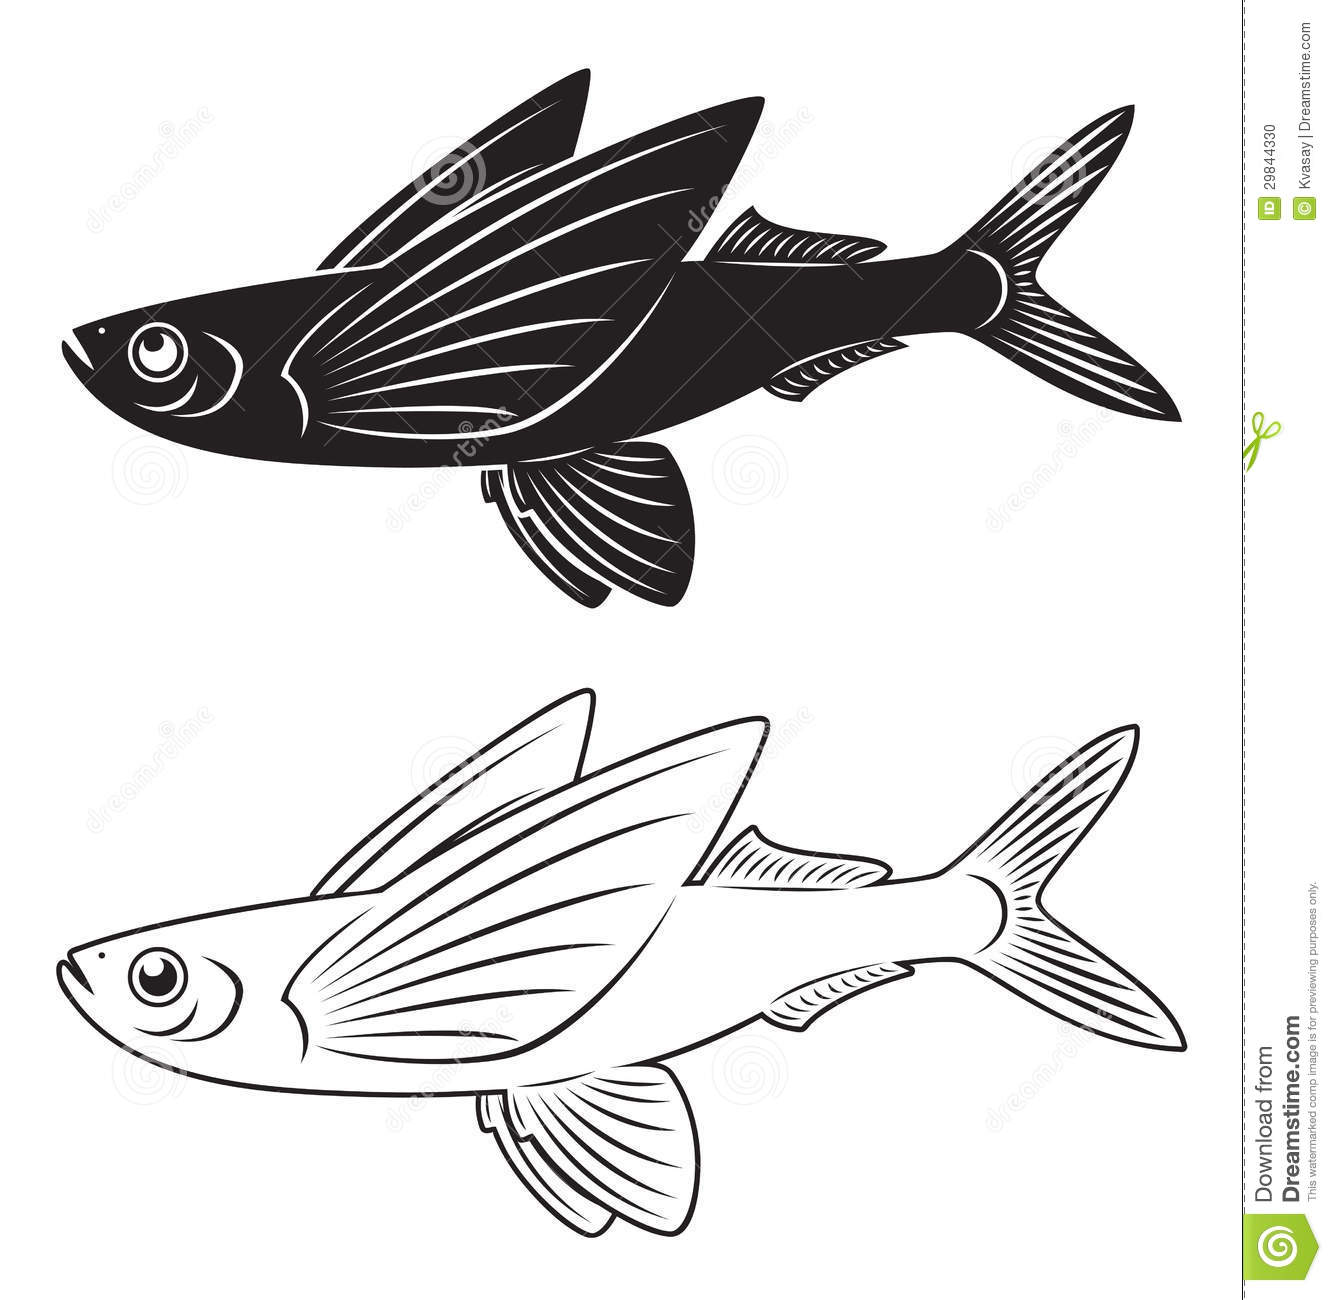 Flying fish clipart.